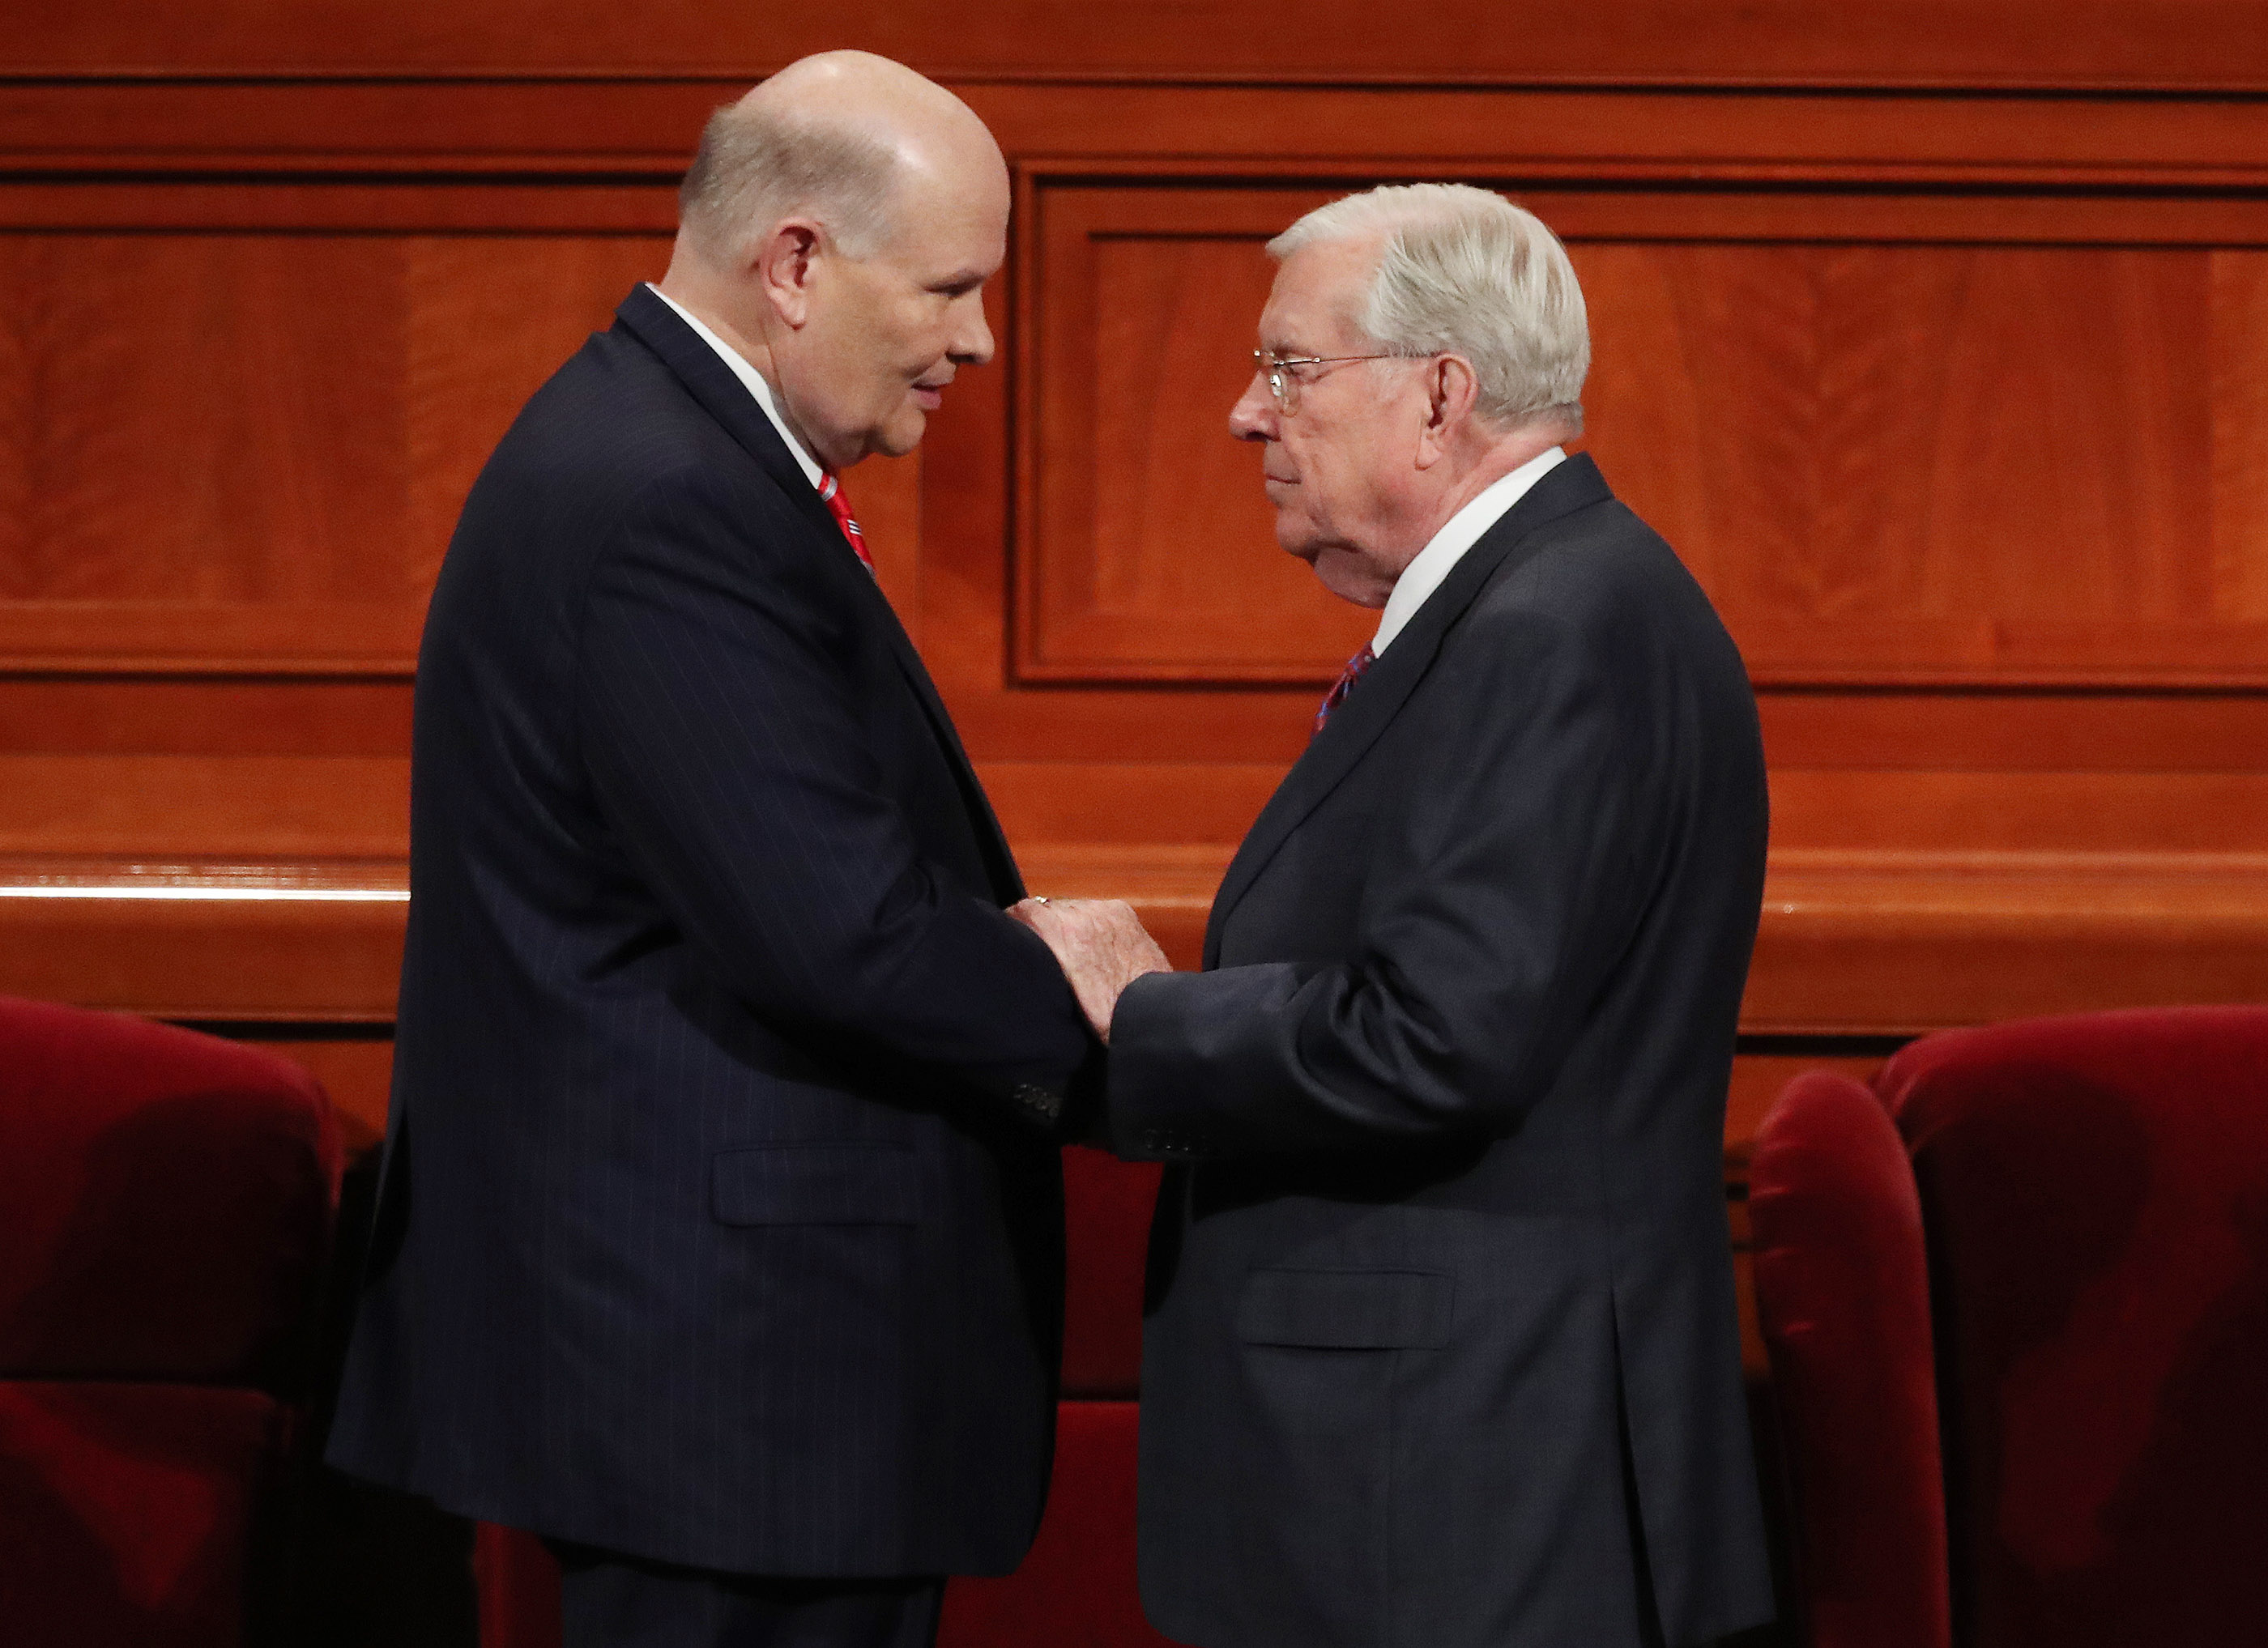 Elder Dale G. Renlund of the Quorum of the Twelve Apostles and President M. Russell Ballard, acting president of the Quorum of the Twelve Apostles, talk prior to the Sunday afternoon session of the 188th Semiannual General Conference of The Church of Jesus Christ of Latter-day Saints in the Conference Center in Salt Lake City on Sunday, Oct. 7, 2018.